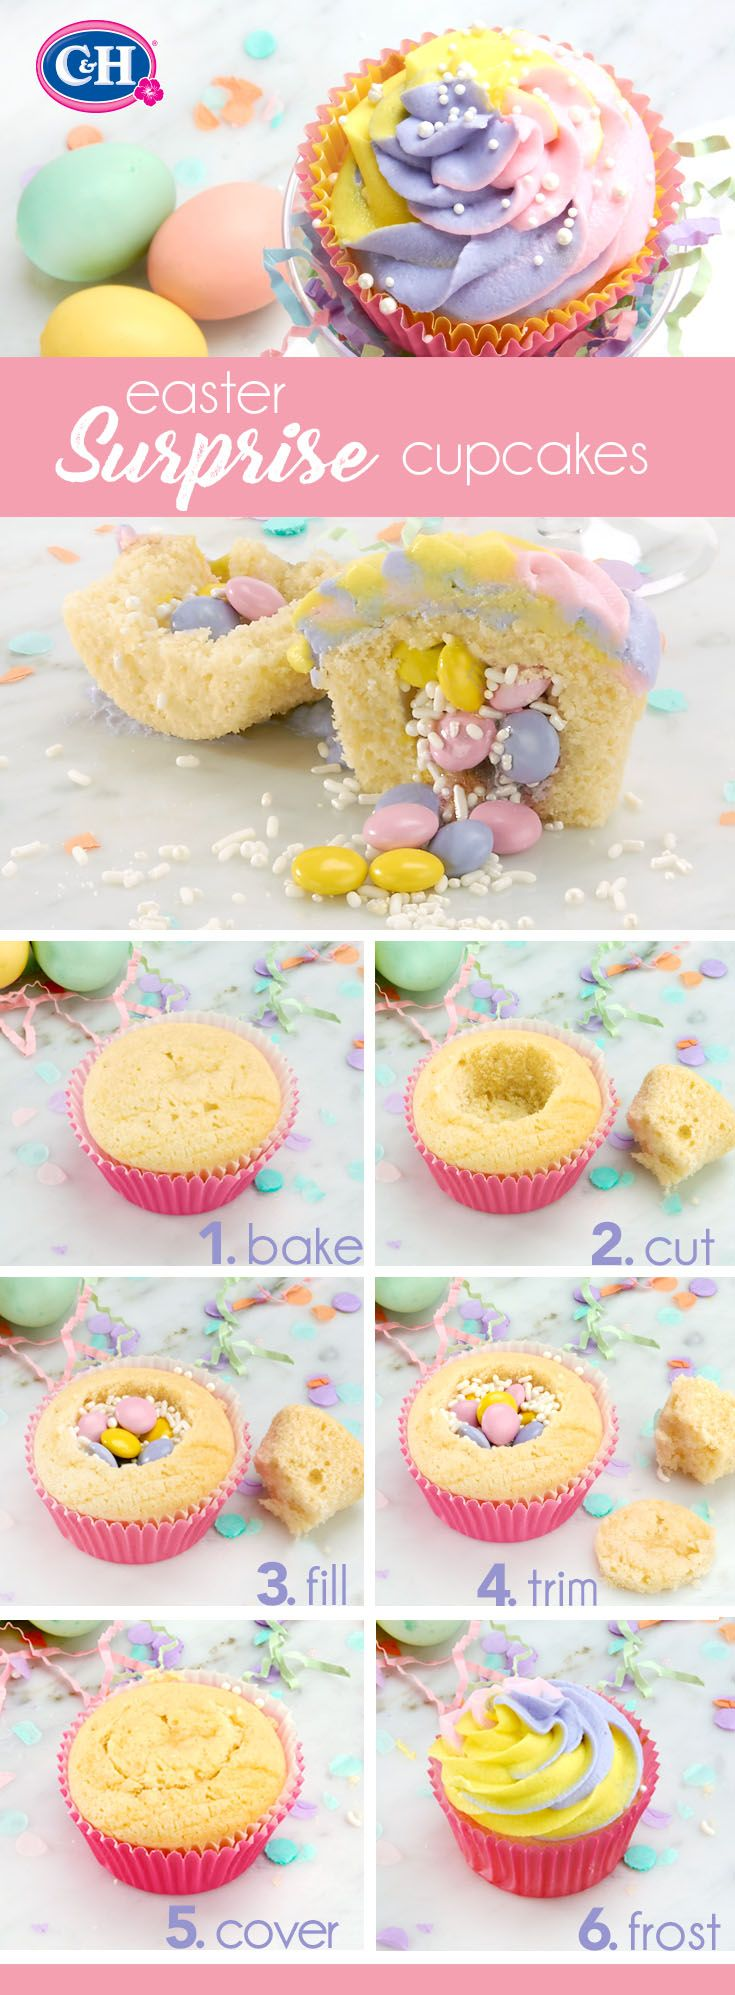 Easter Surprise Cupcakes  | Delight your Easter guests with these whimsical pinata cupcakes filled with your favorite candy.